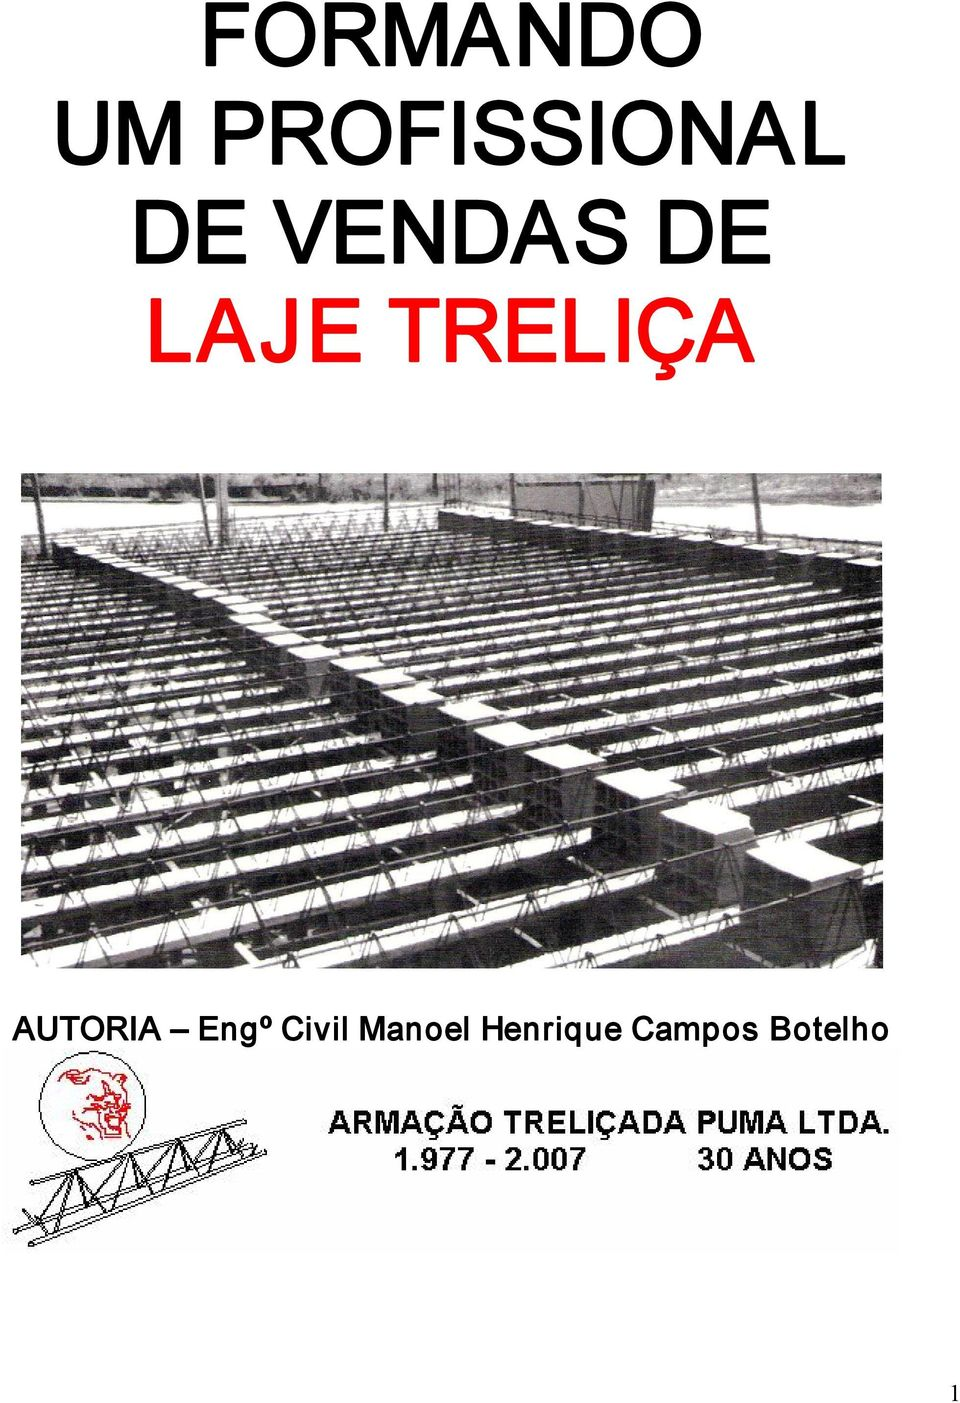 AUTORIA Engº Civil Manoel